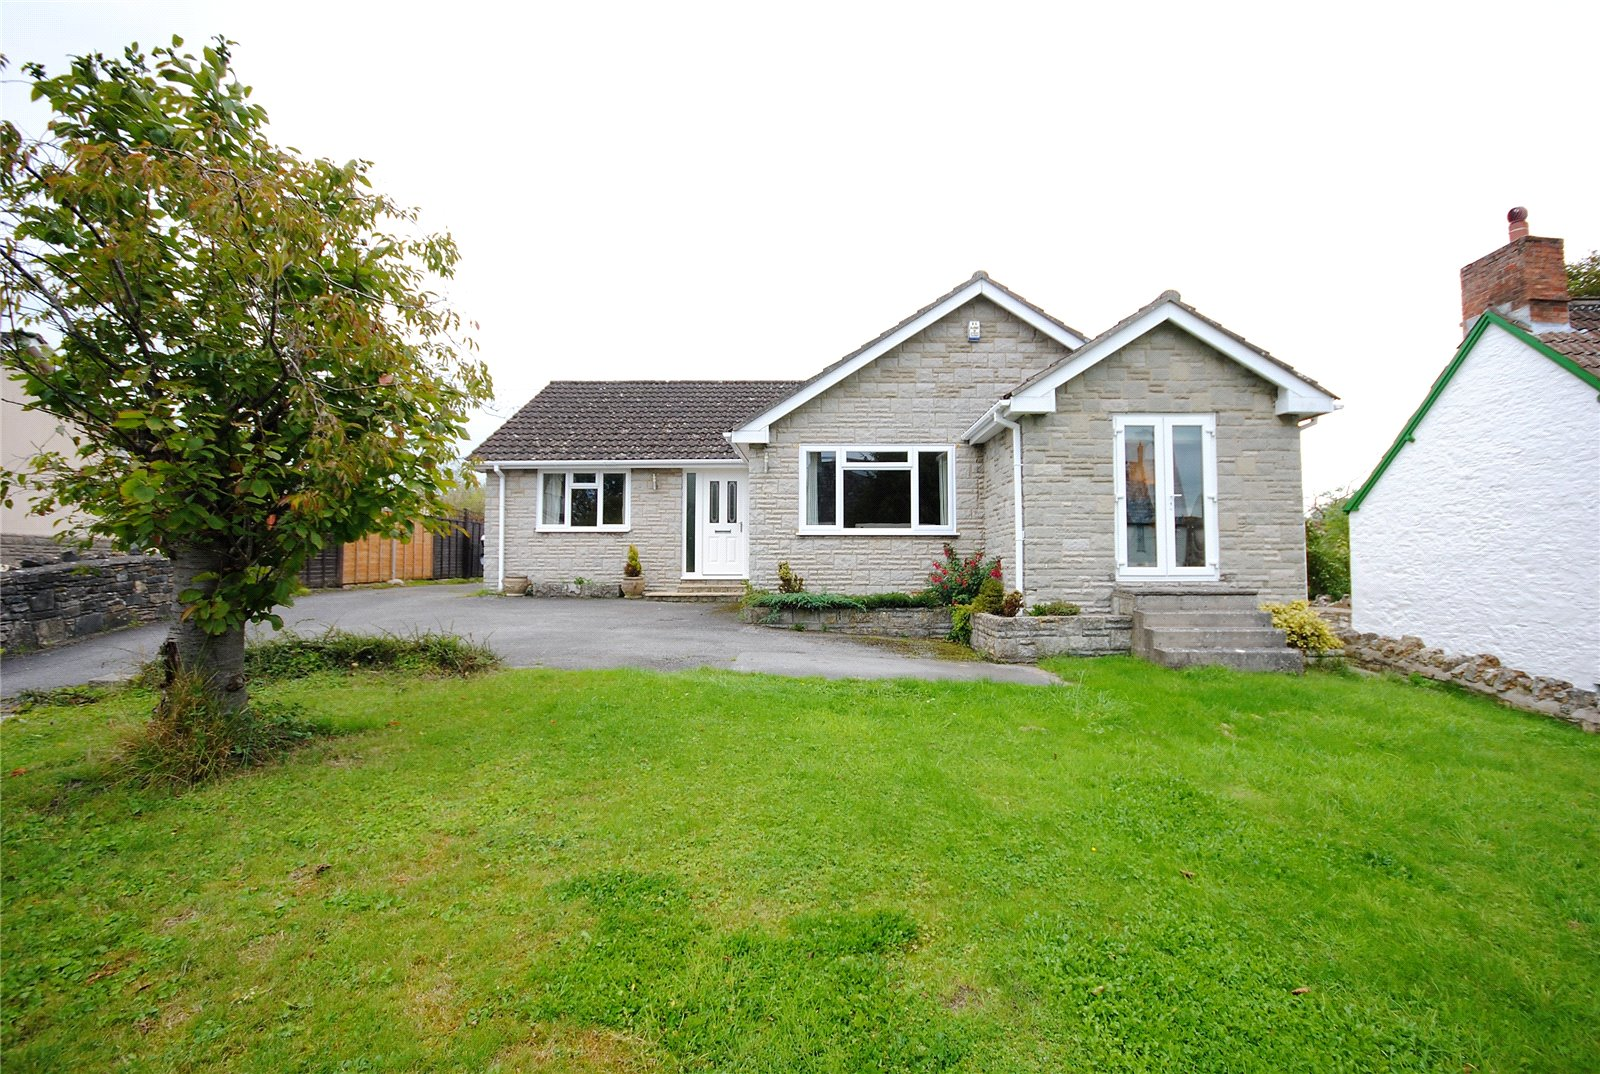 3 Bedrooms Bungalow for sale in Redmans Hill Blackford Wedmore BS28